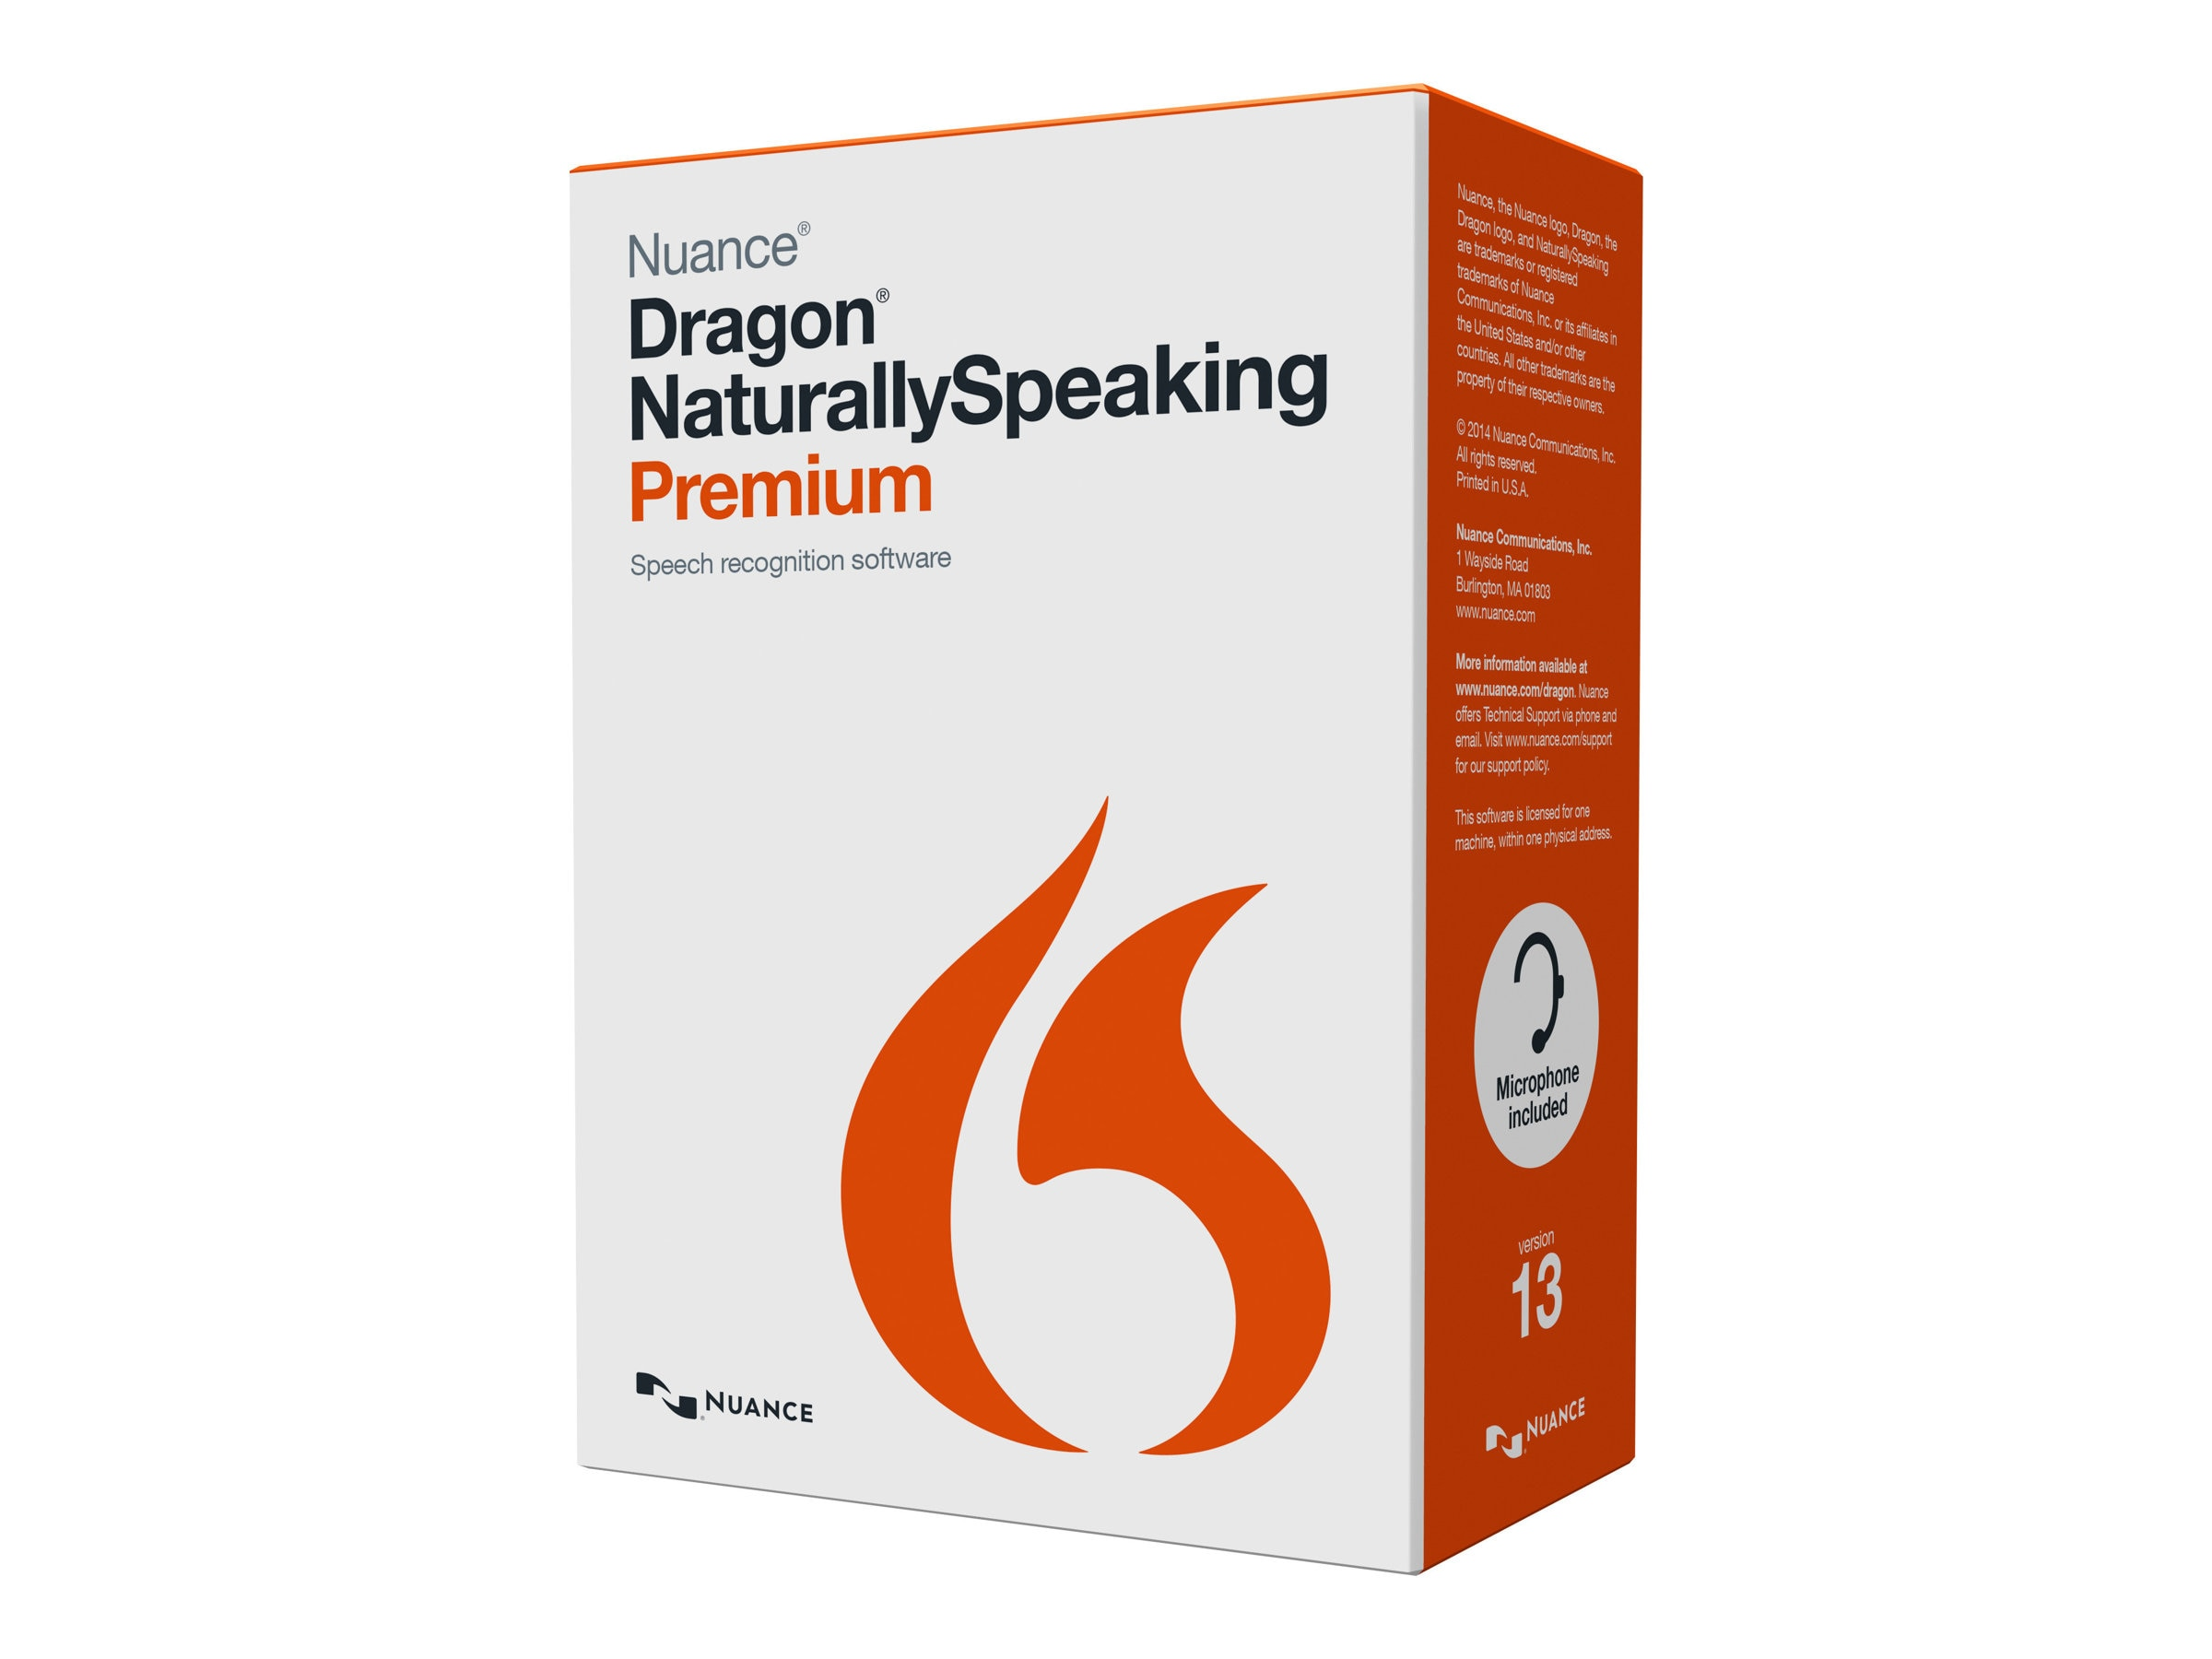 Nuance Dragon NaturallySpeaking 13.0 Premium US Mailer Without Headset, K609A-K1A-13.0